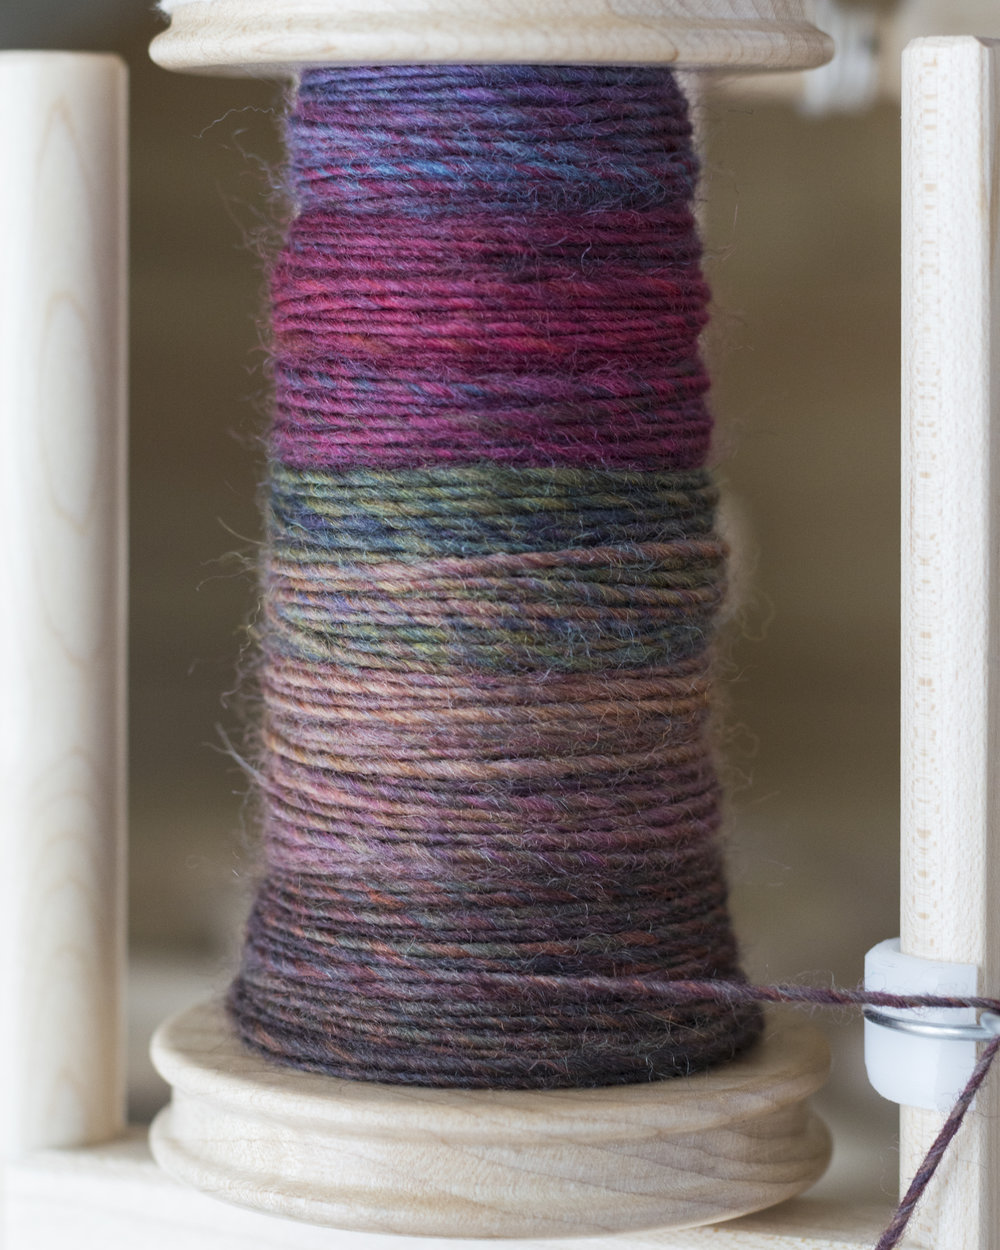 This is the fiber from JulieSpins that I mentioned in the episode. It's Falkland.